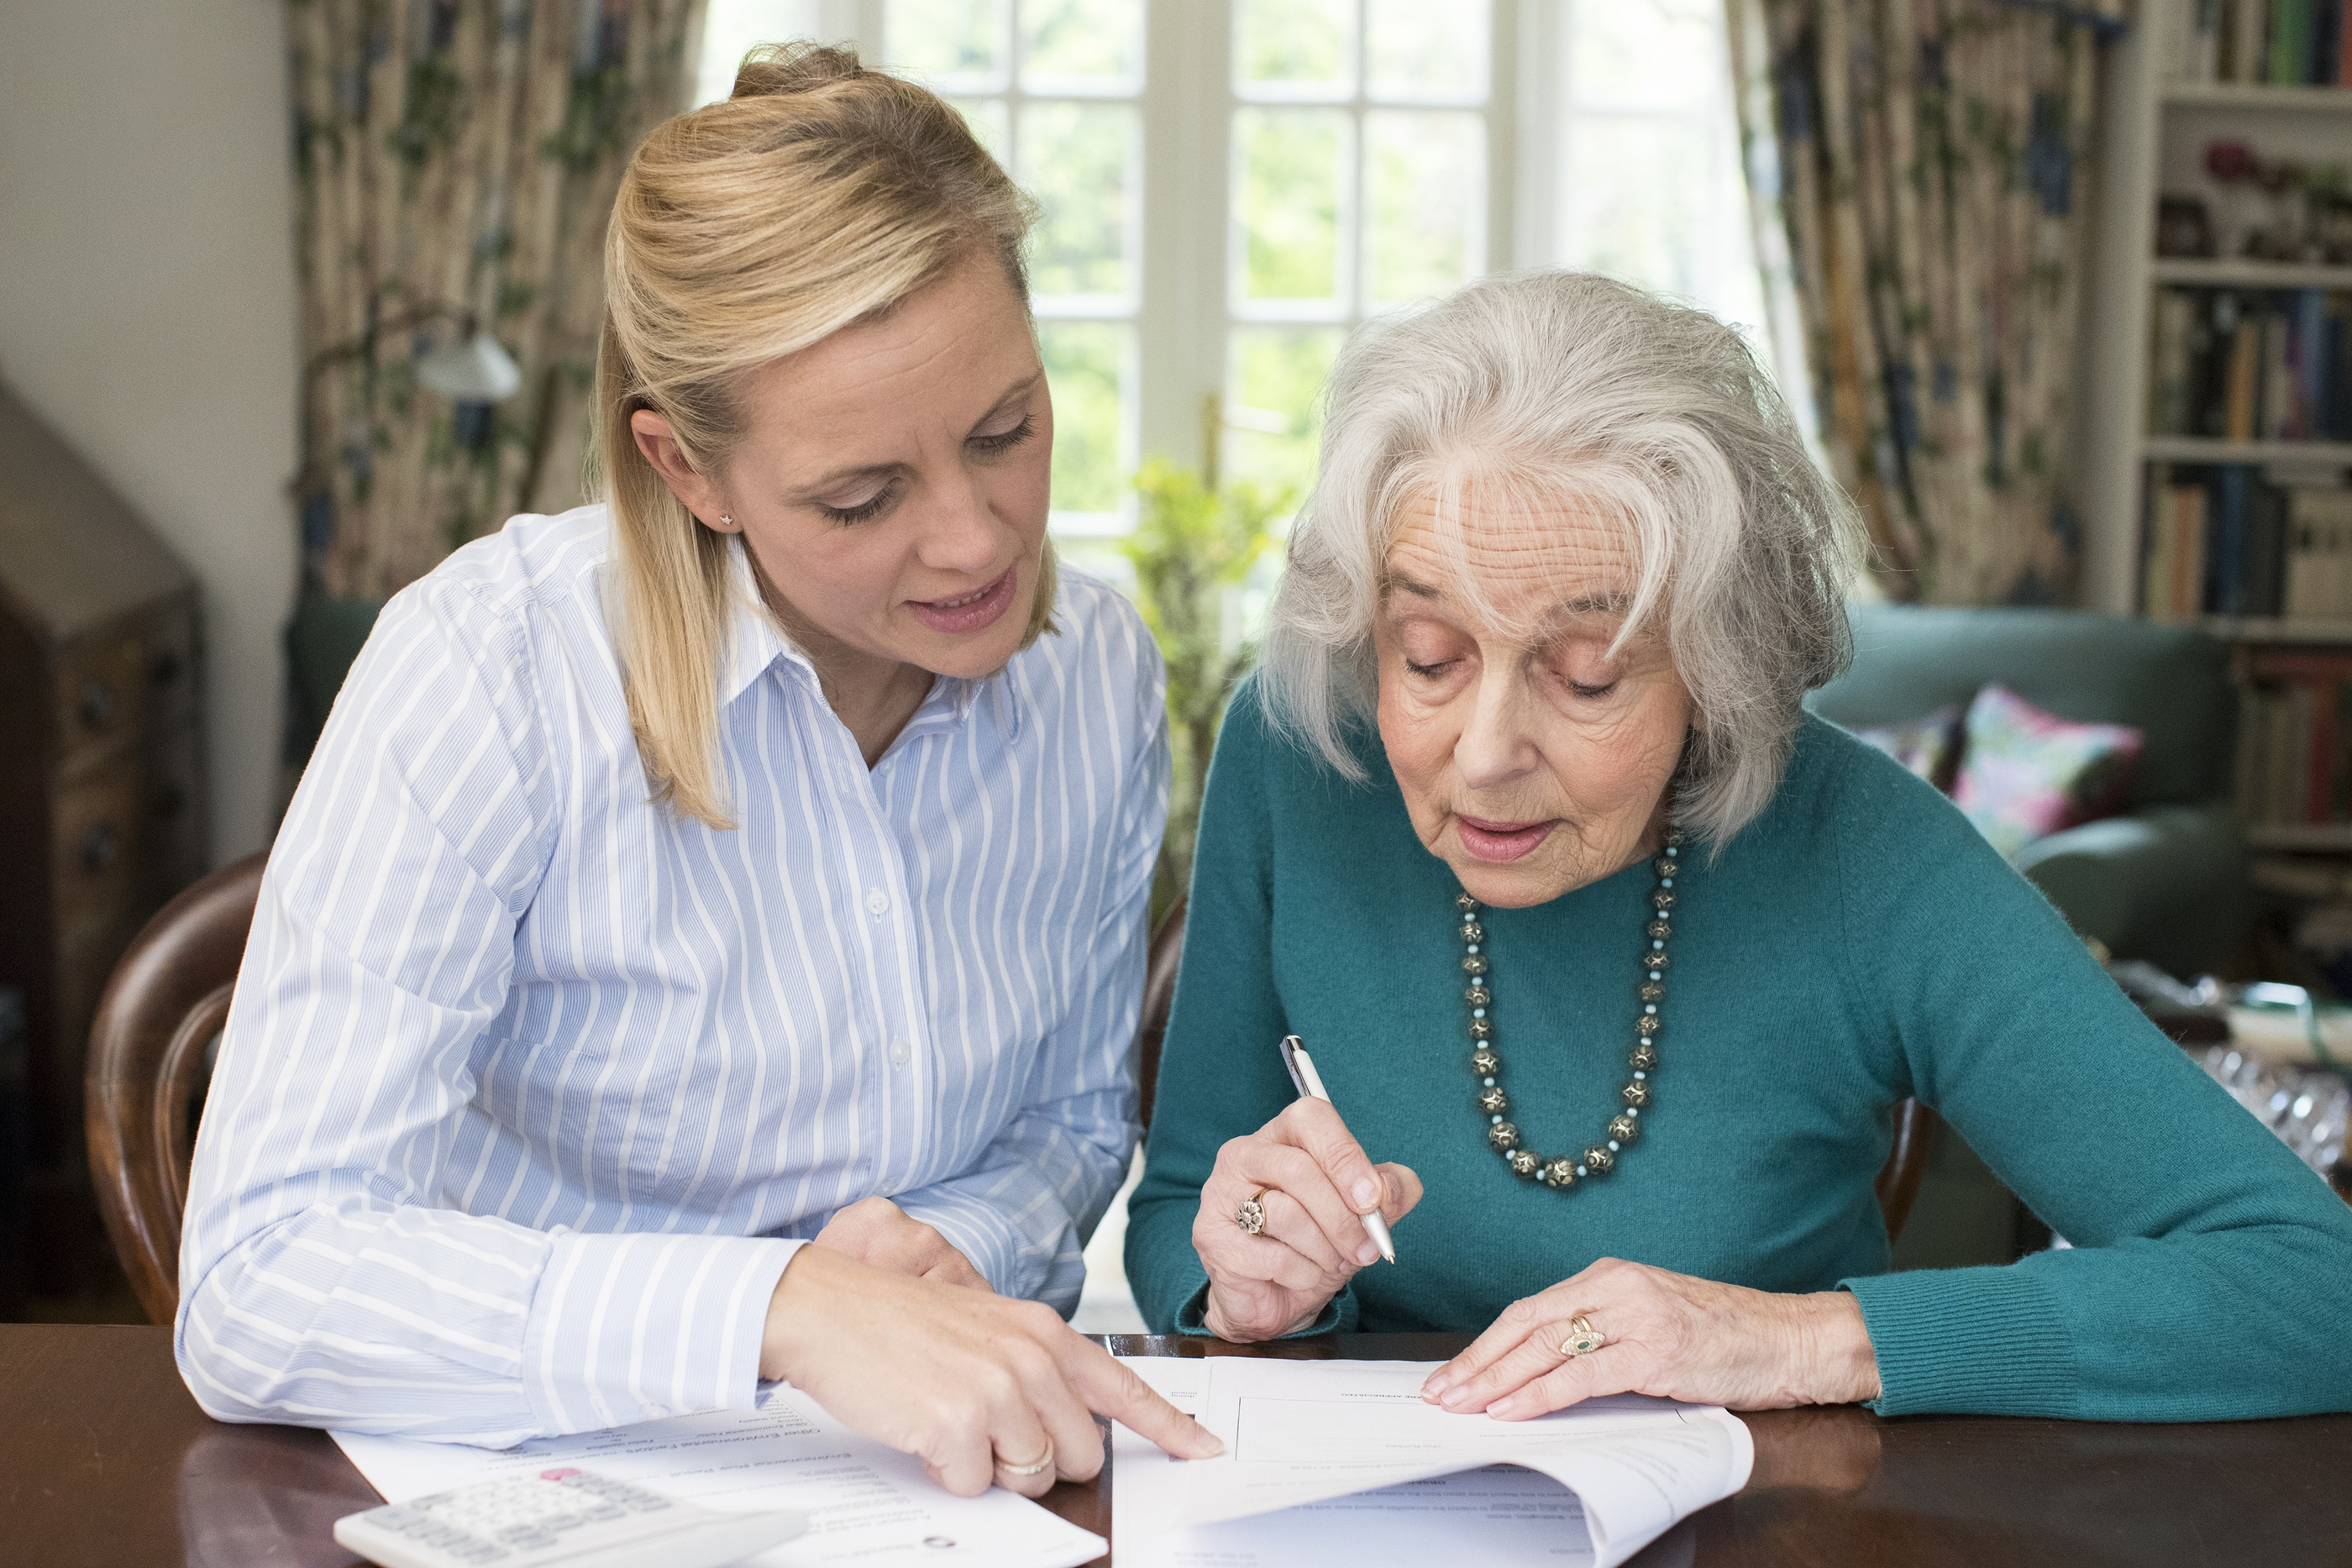 How To Help Caregivers Achieve Their Goals